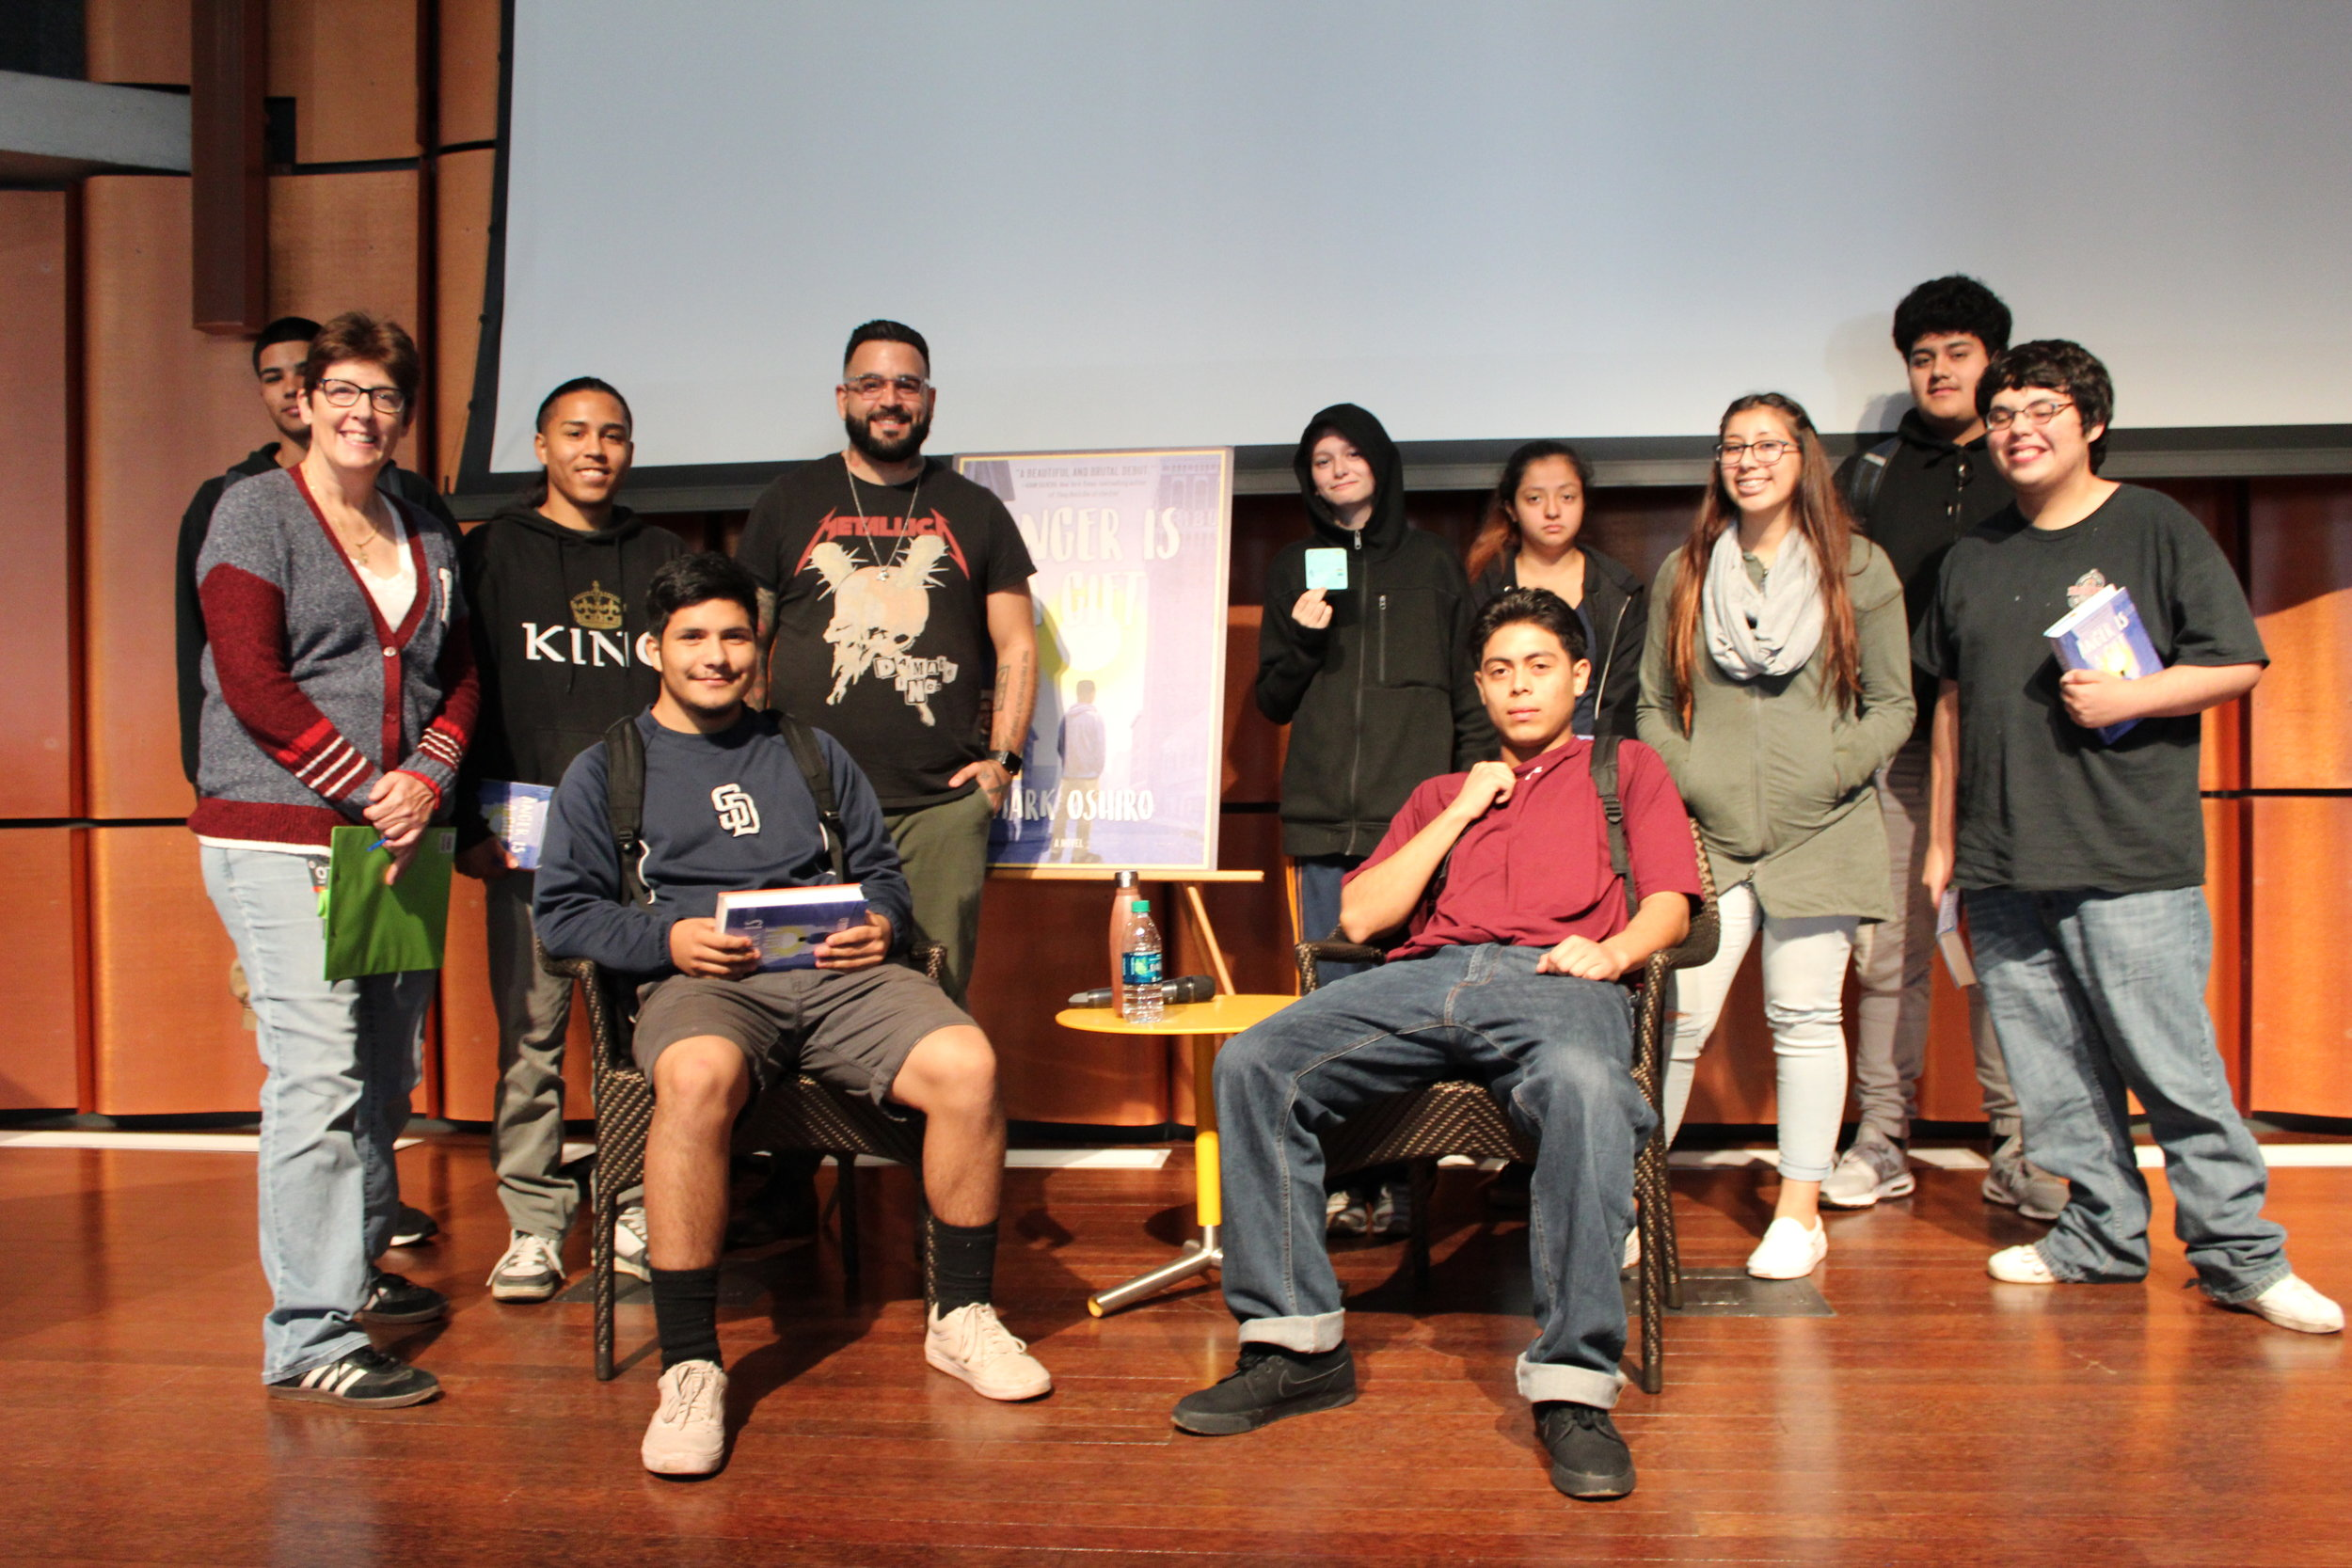 Author Mark Oshiro poses with one of our classes from Monarch School after giving a talk about his book, Anger is a Gift.